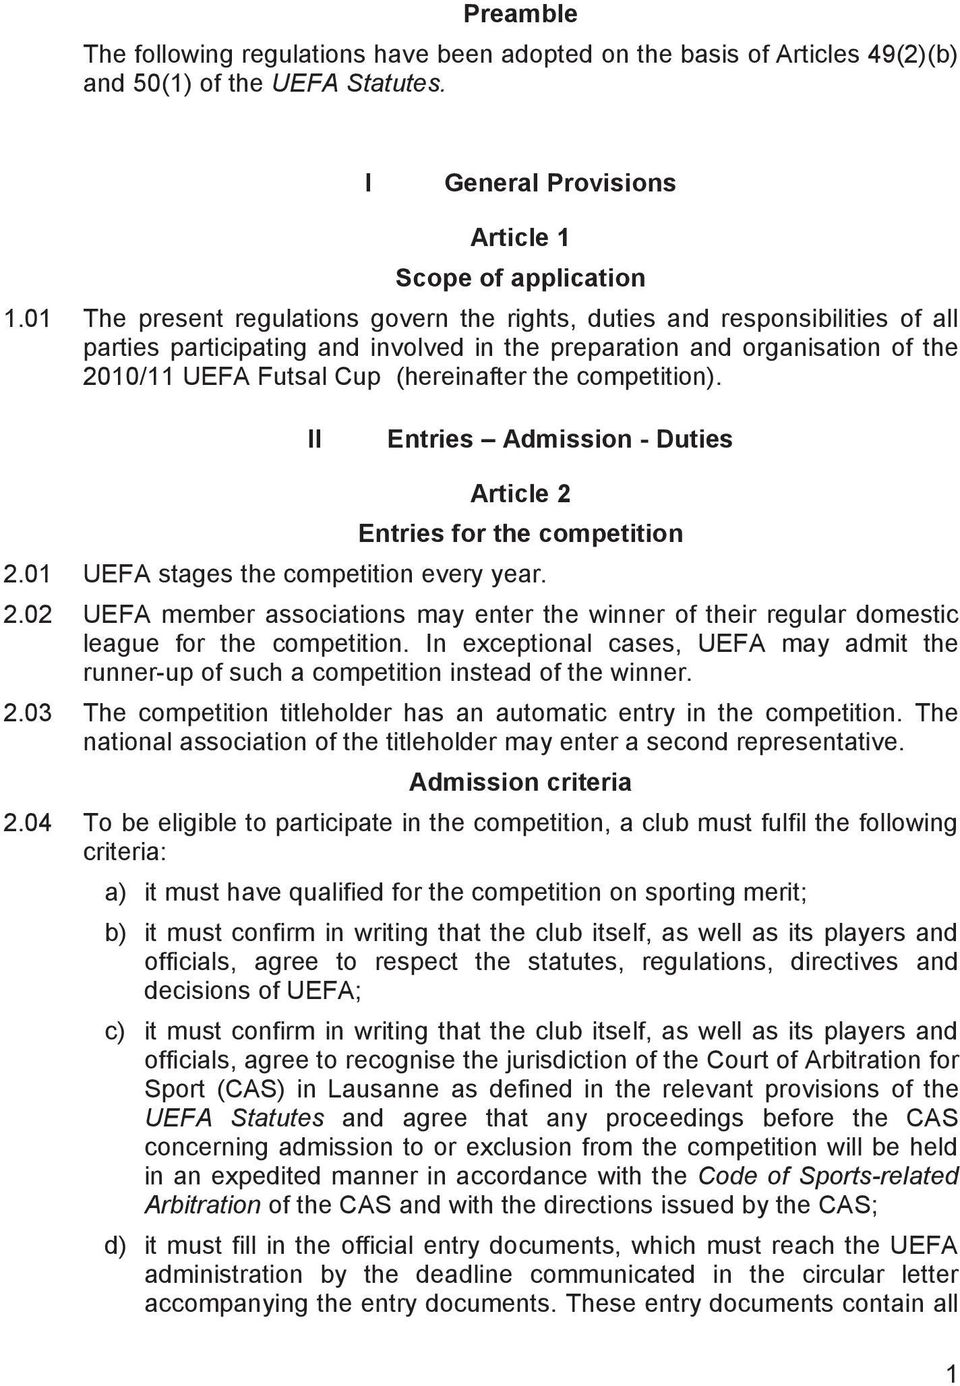 competition). II Entries Admission - Duties Article 2 Entries for the competition 2.01 UEFA stages the competition every year. 2.02 UEFA member associations may enter the winner of their regular domestic league for the competition.